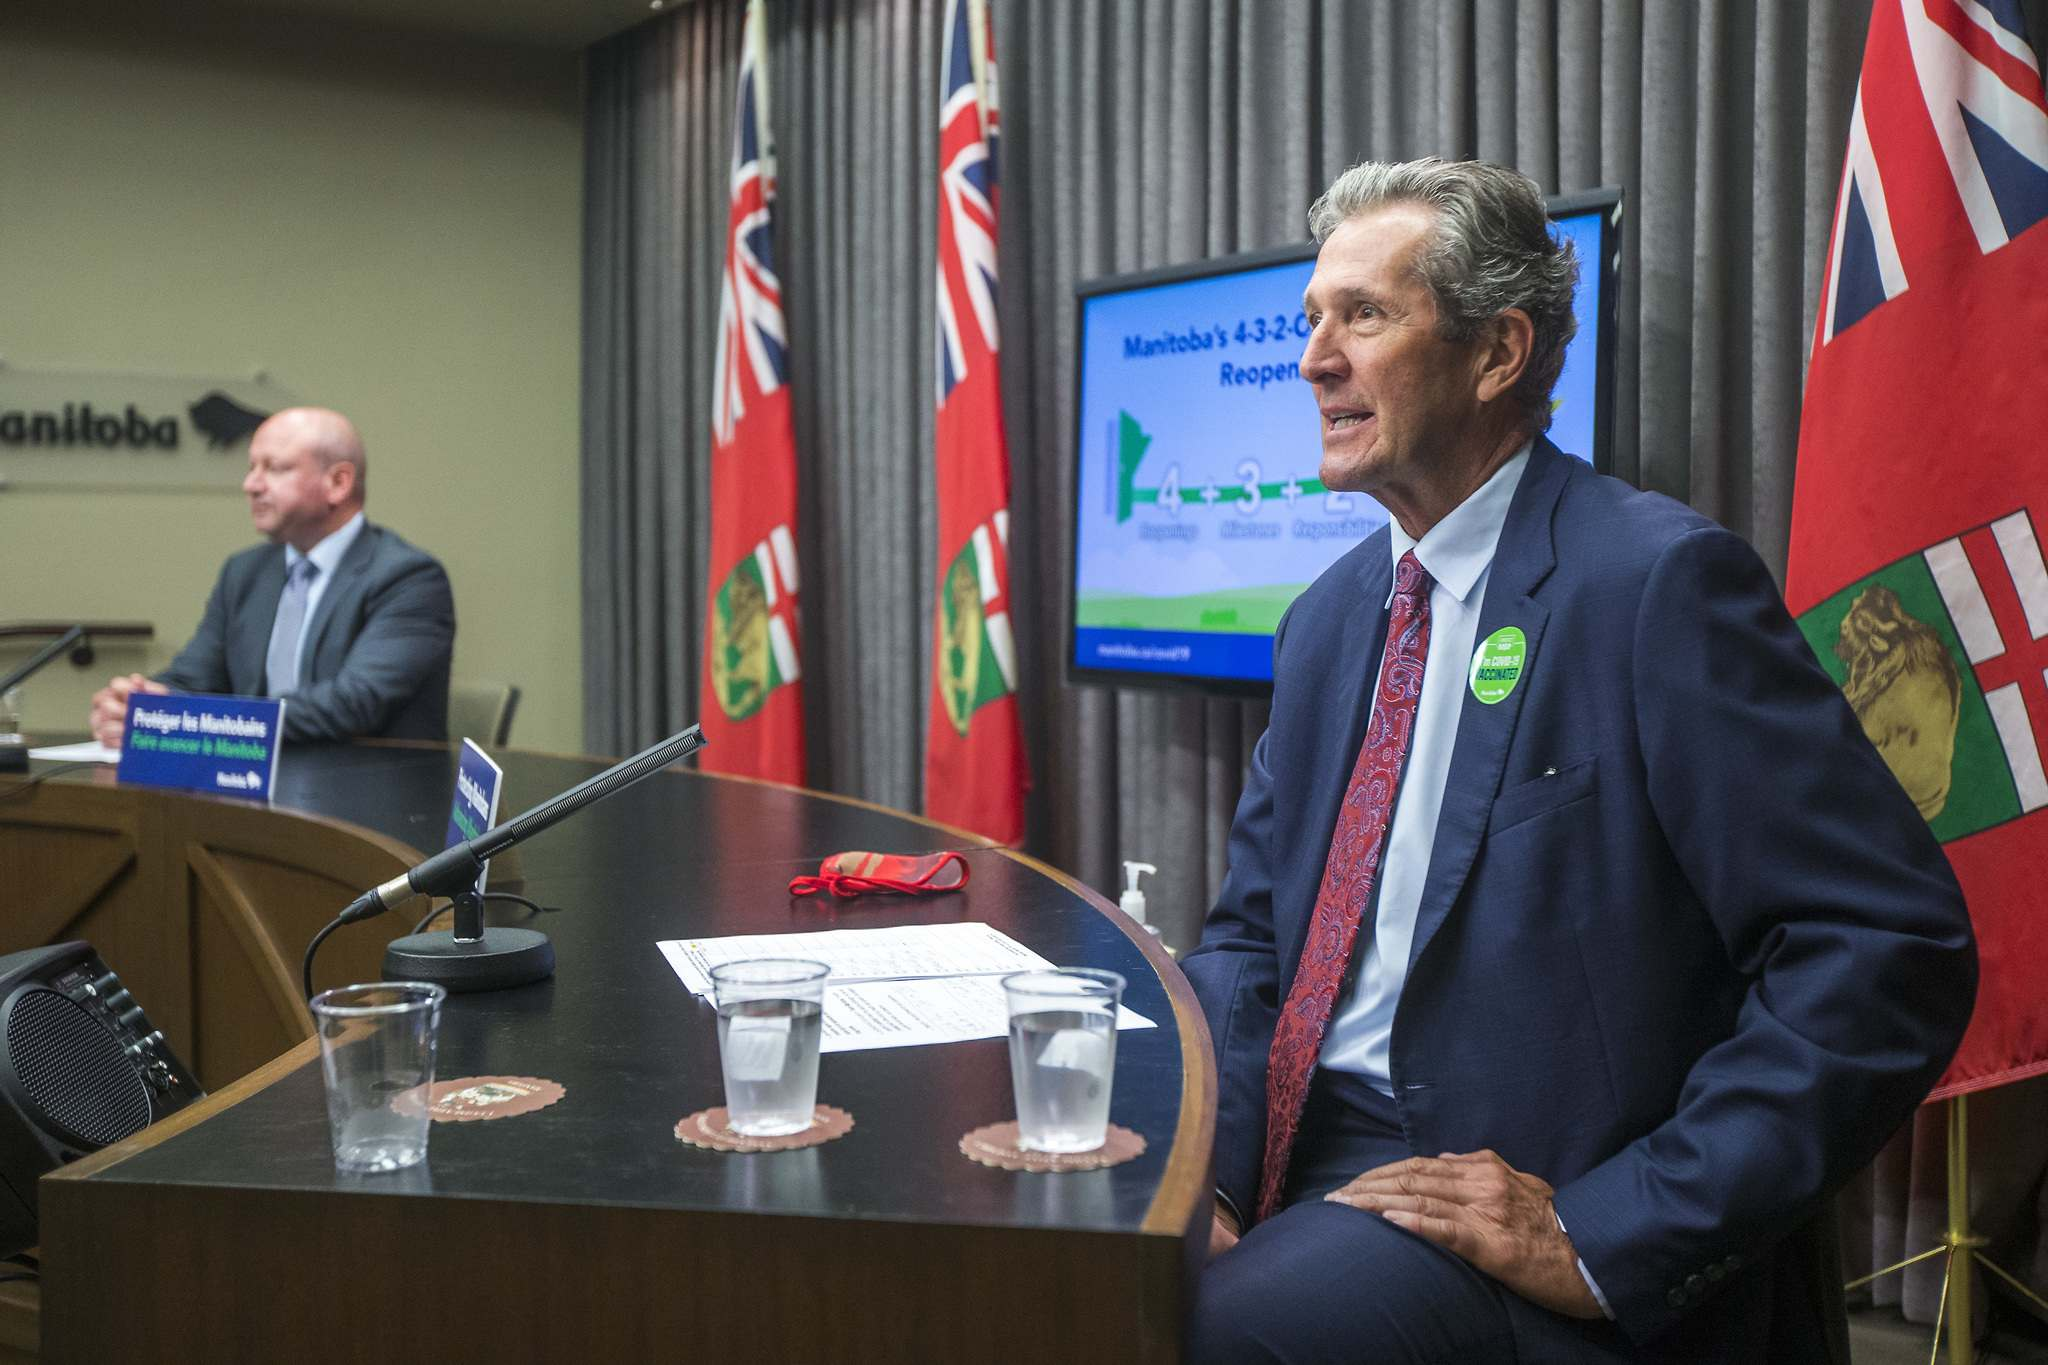 Premier Brian Pallister, right, and Dr. Brent Roussin, chief provincial public health officer, outline the summer reopening plan at the Manitoba Legislative Building in Winnipeg on Thursday. (Winnipeg Free Press)</p></p>